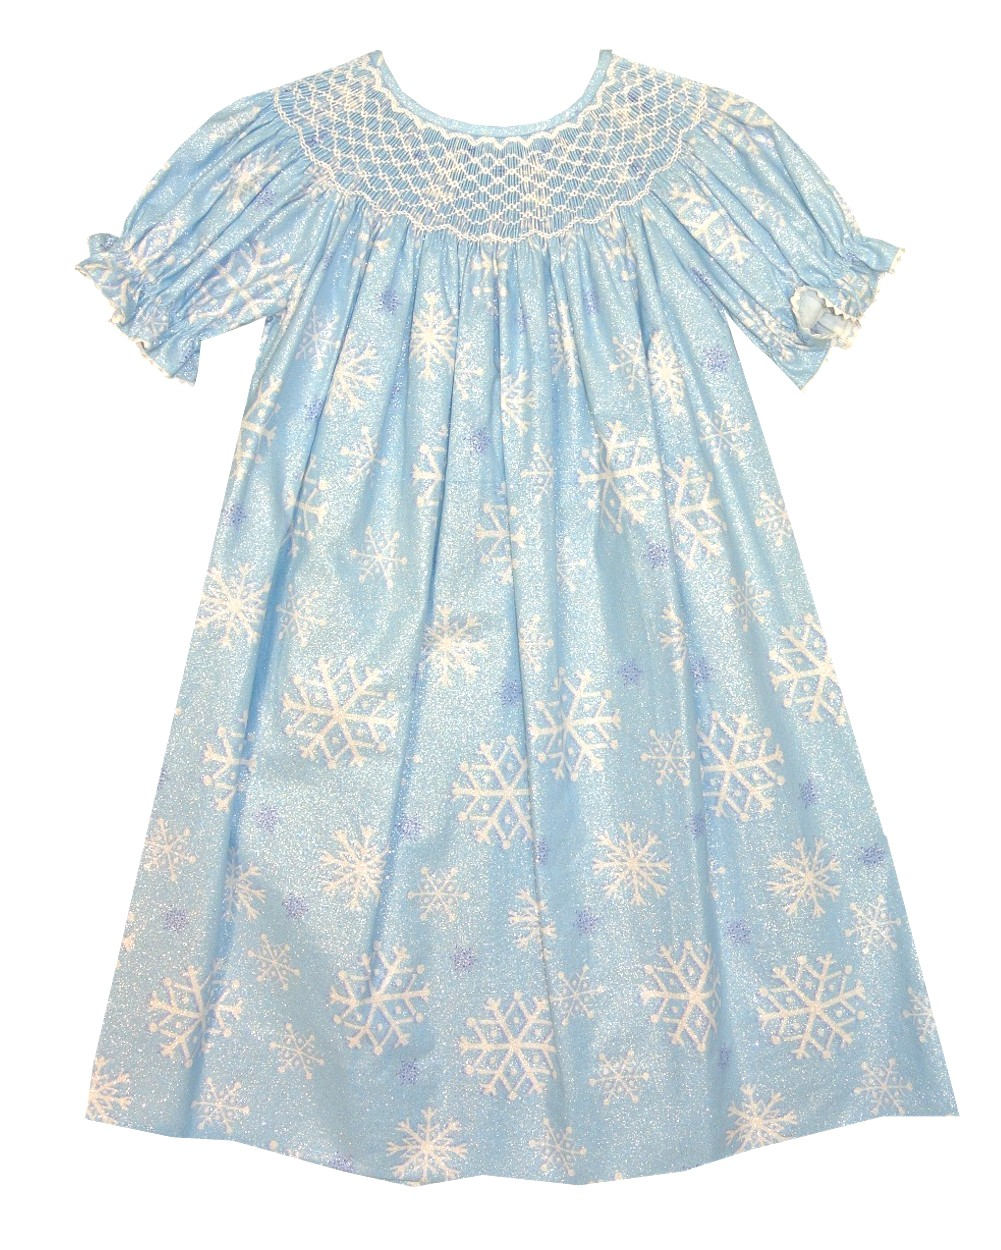 Claire & Charlie Smocked Frozen Elsa Dress in Blue Shiney Snowflake ...